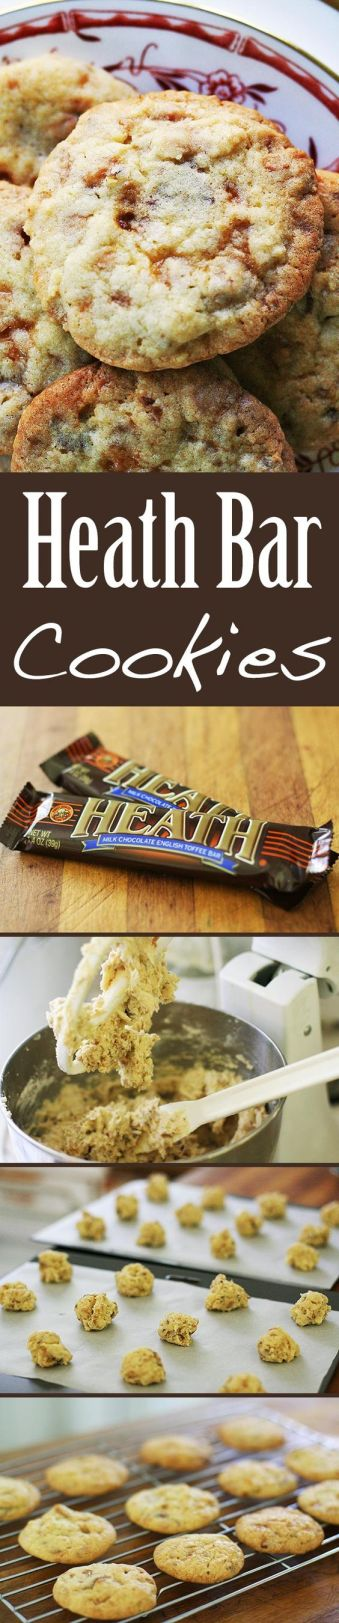 Heath Bar Cookies - 5 Amazingly Easy Candy Bar Cookie Recipes